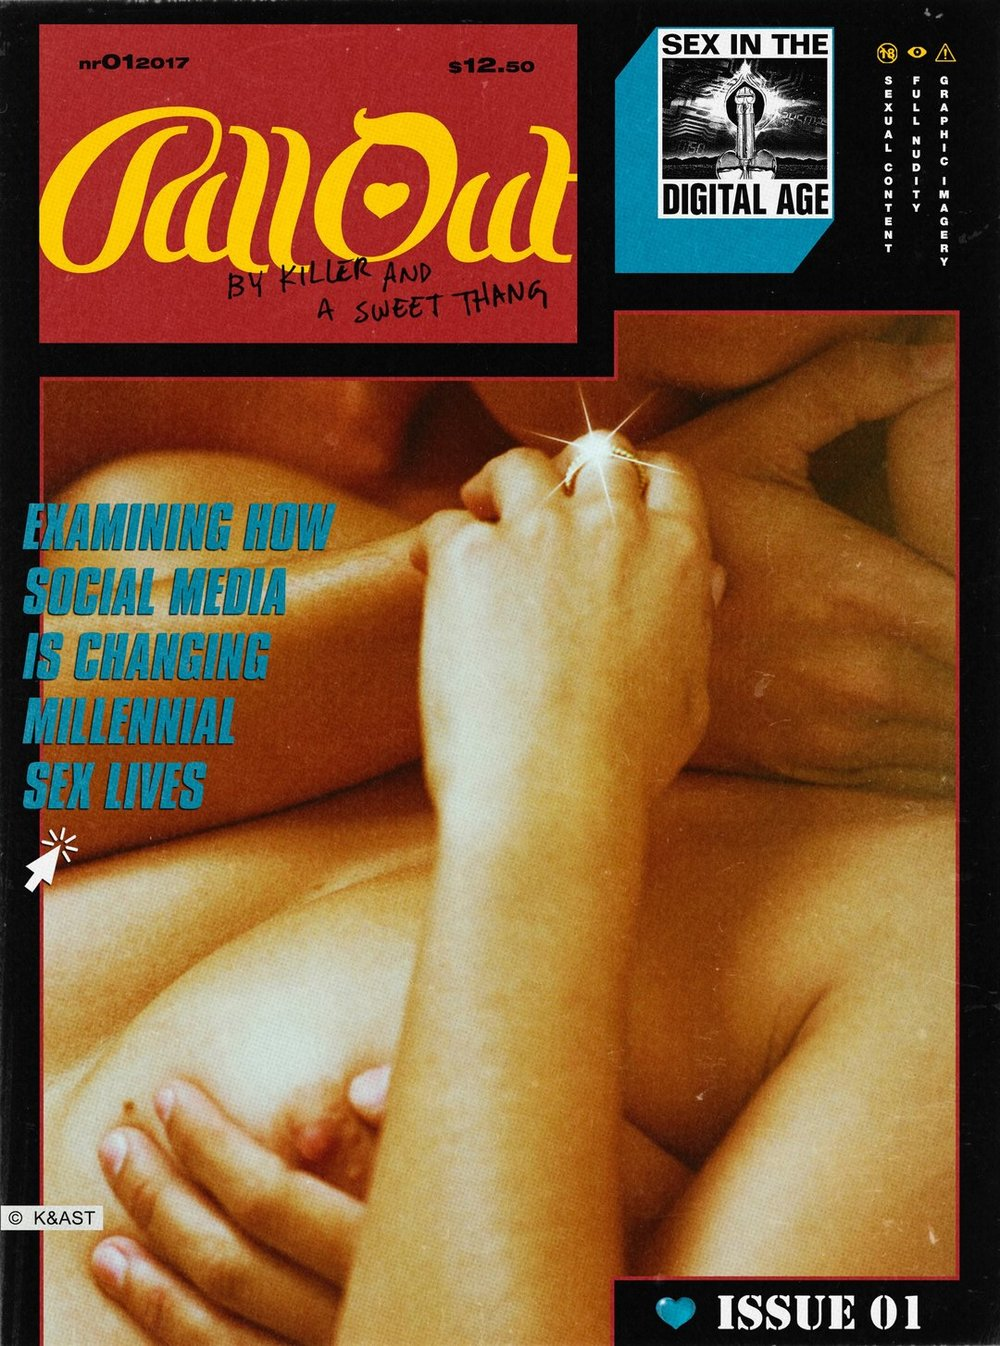 PULLOUT_COVER7_1080x.jpeg